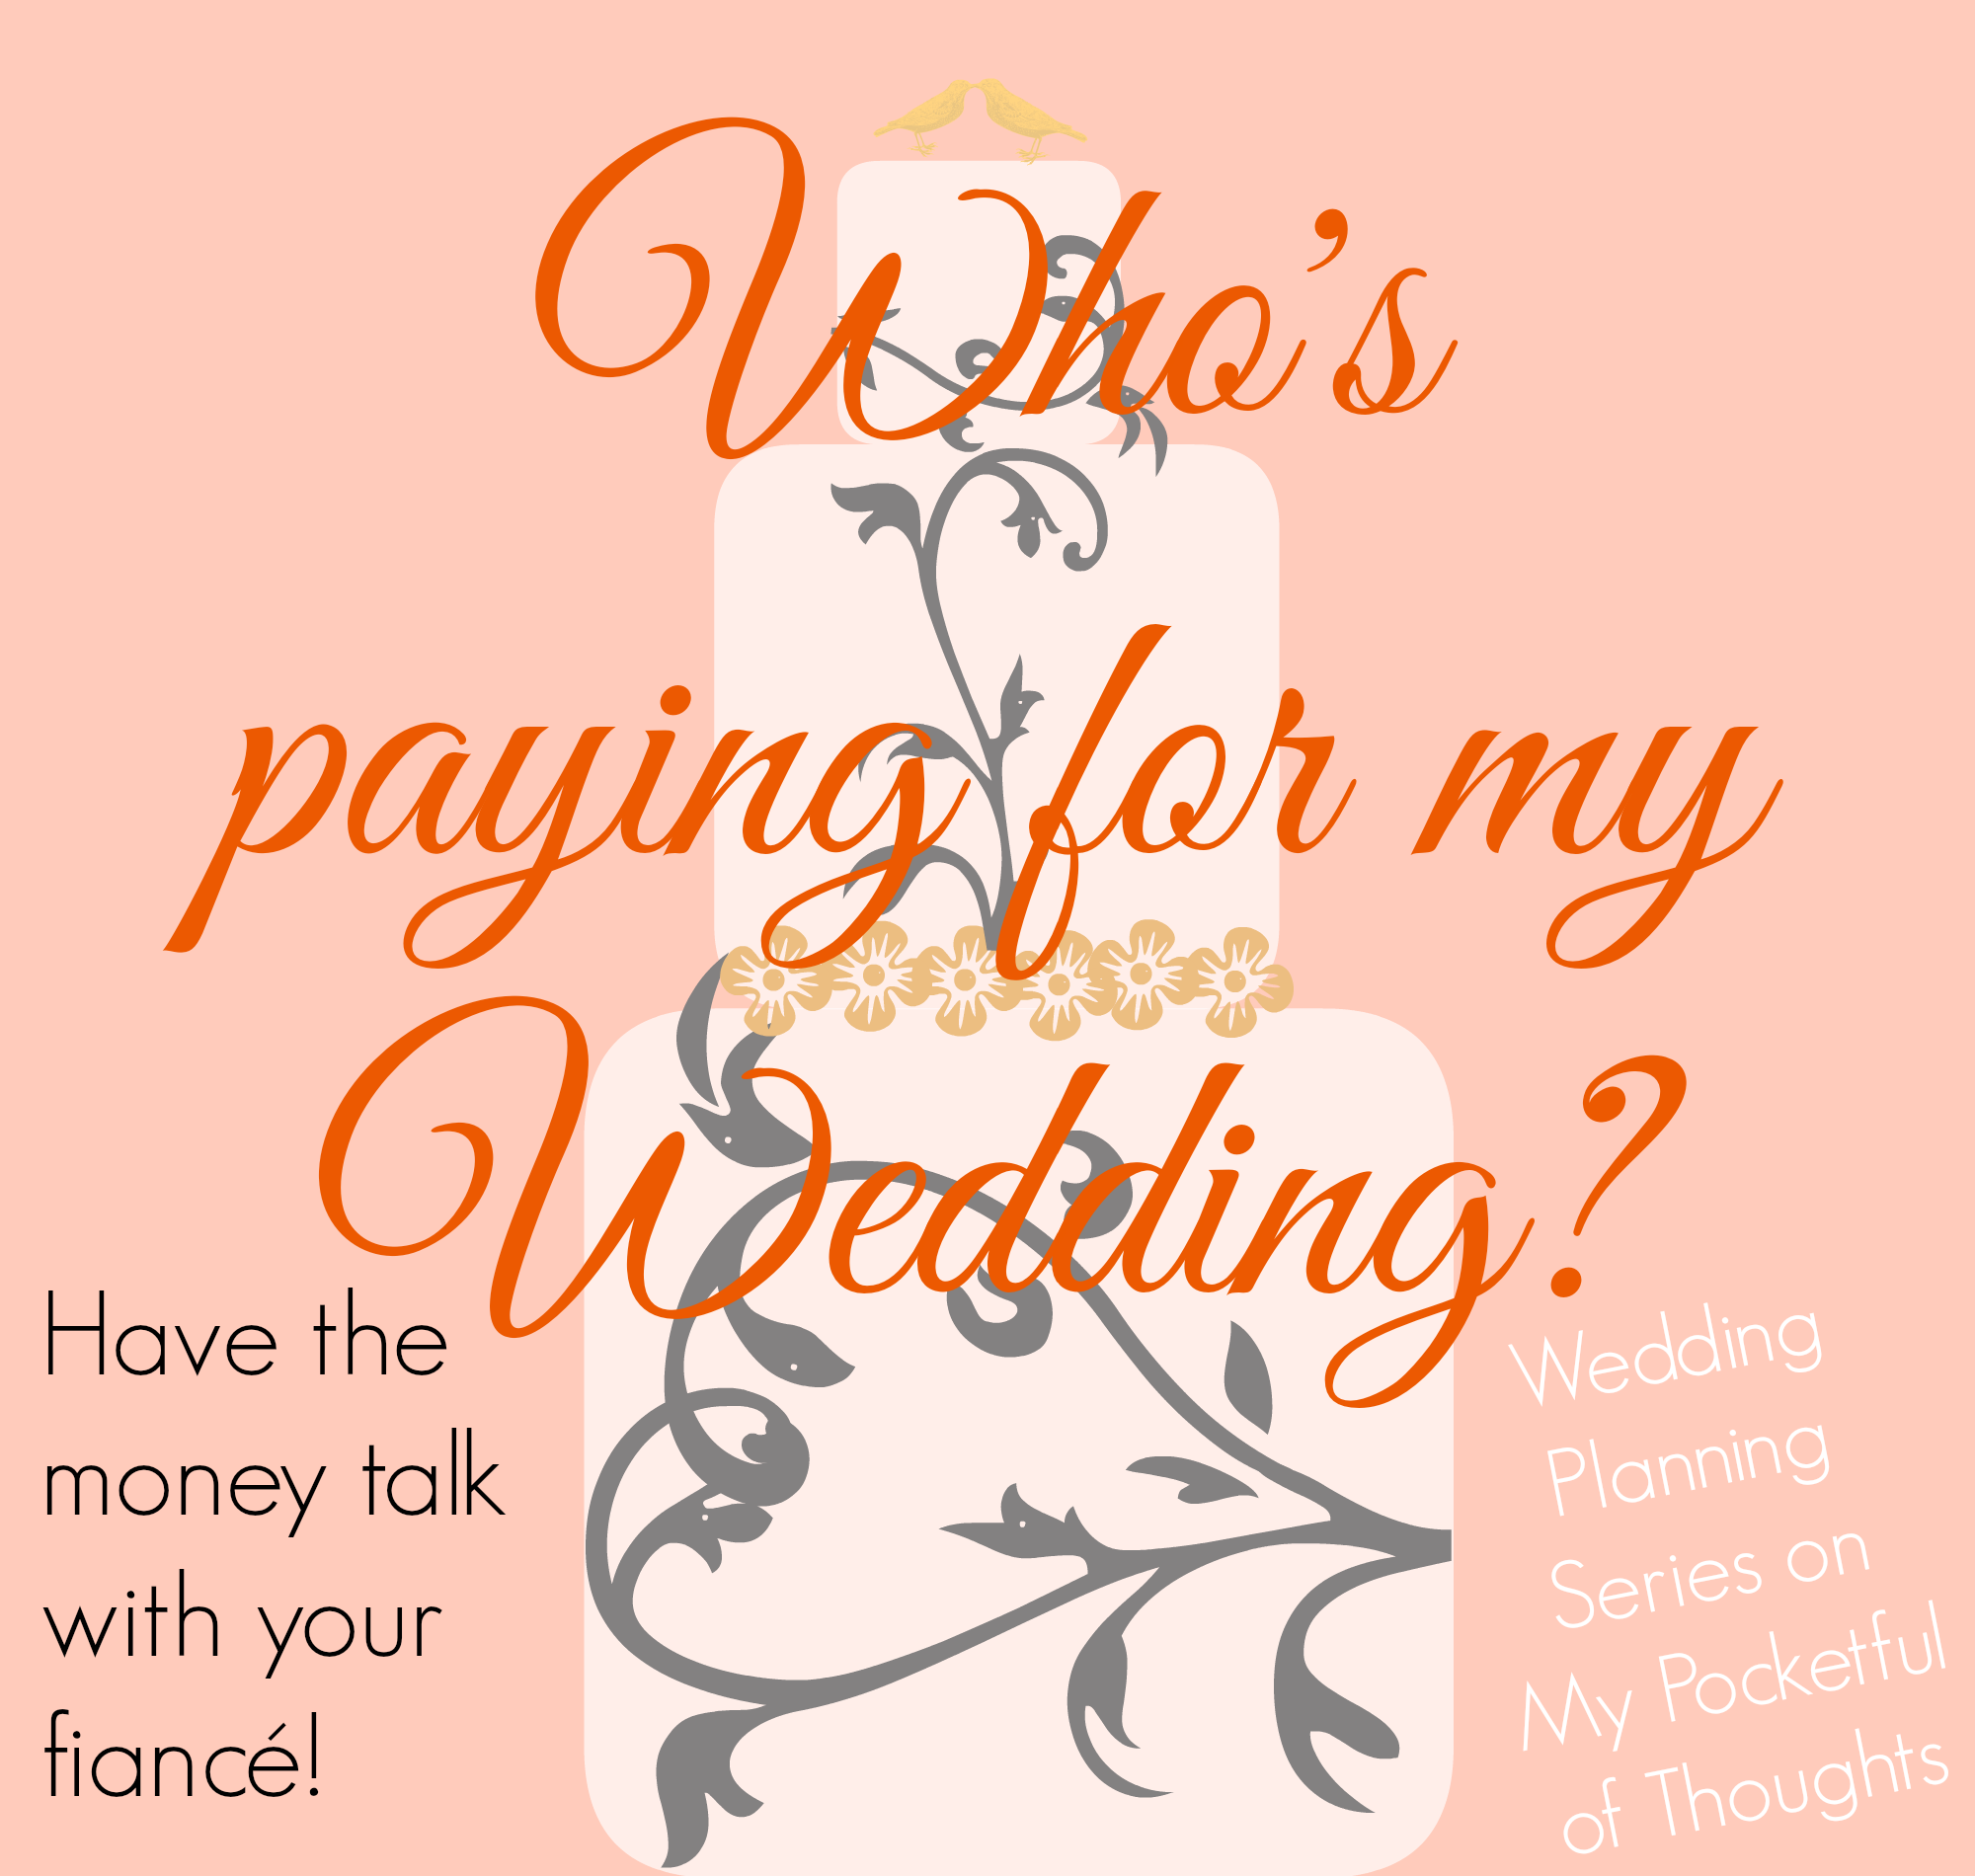 Are you wondering who is paying for the wedding? Then you need to have this discussion! This article is part of the #Wedding Planning Series on My Pocketful of Thoughts